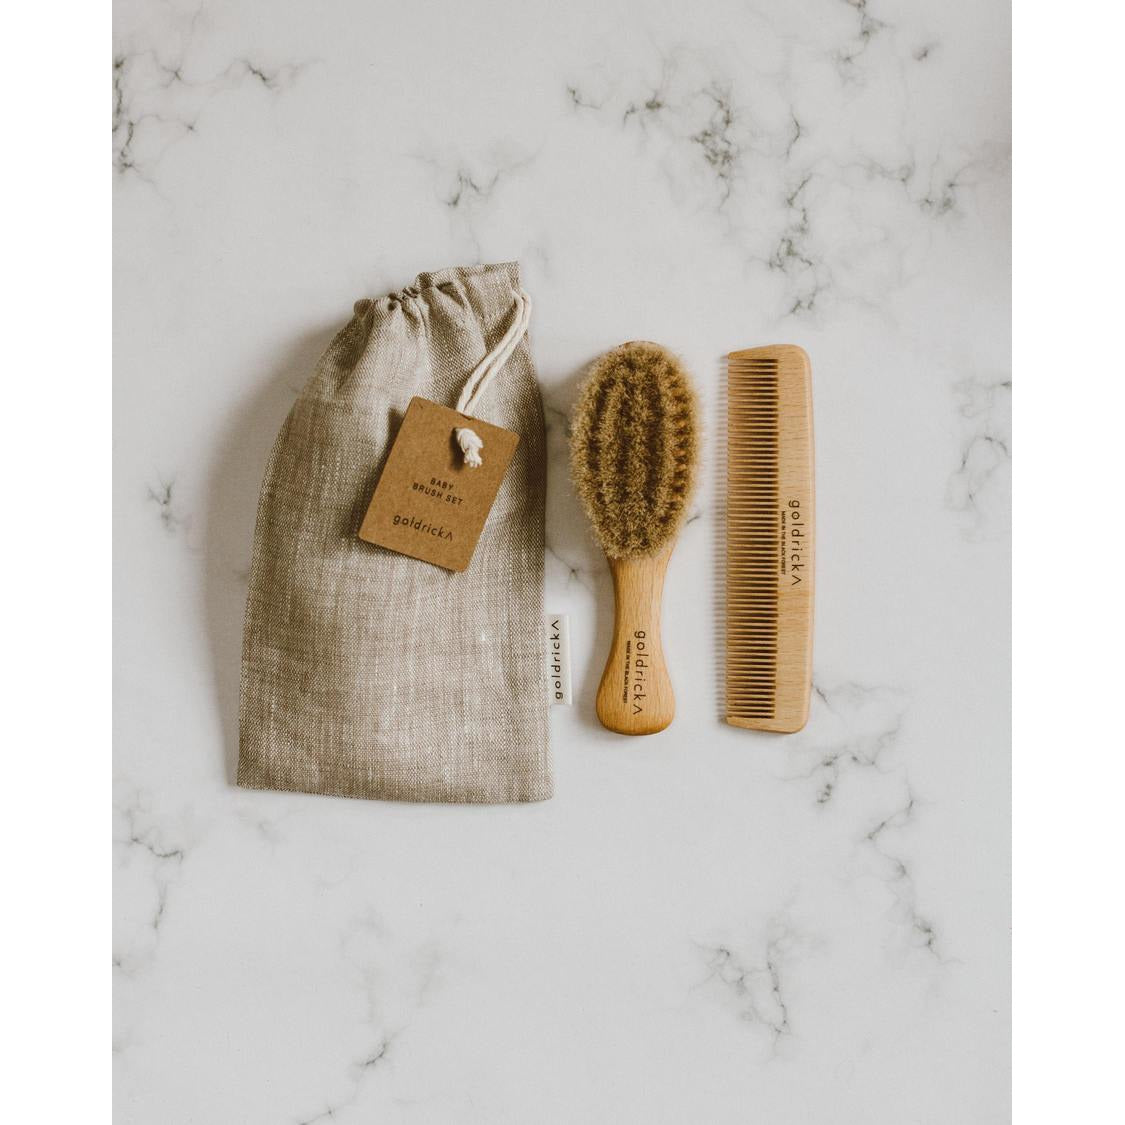 Goldrick Baby Brush Set | Brush & Comb | Handmade in England | Child Size - Scandi Minimal